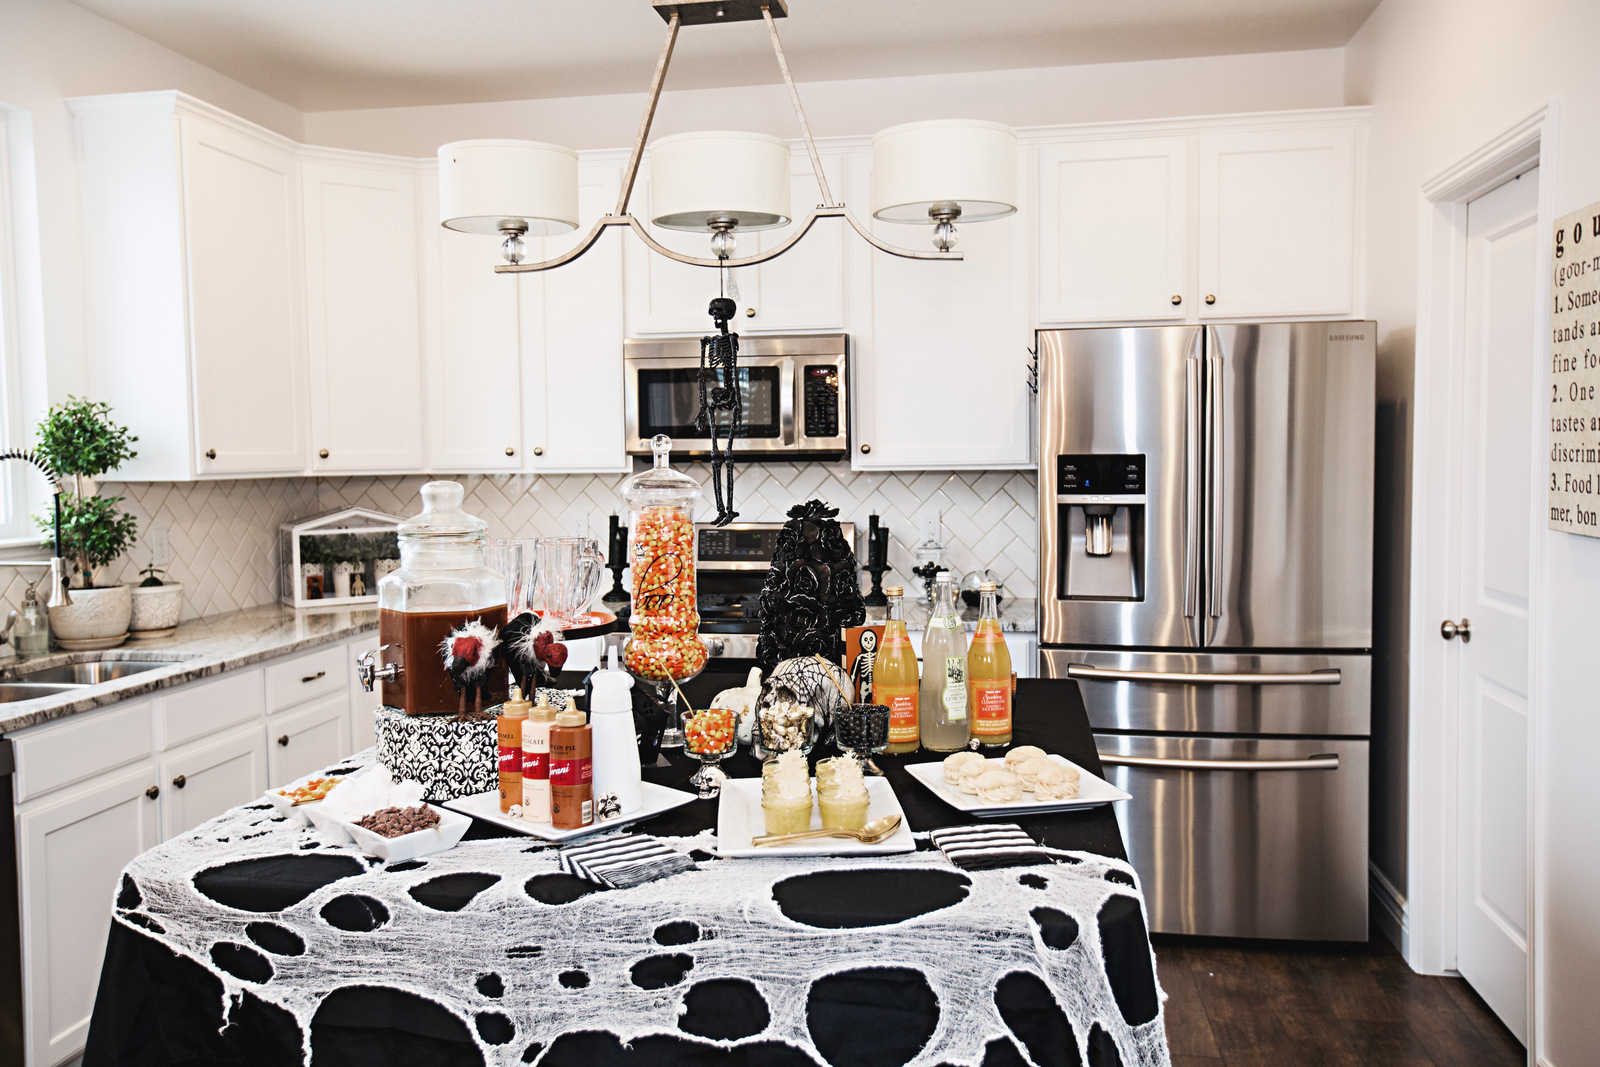 10 Tips For Throwing A Classy Halloween Party